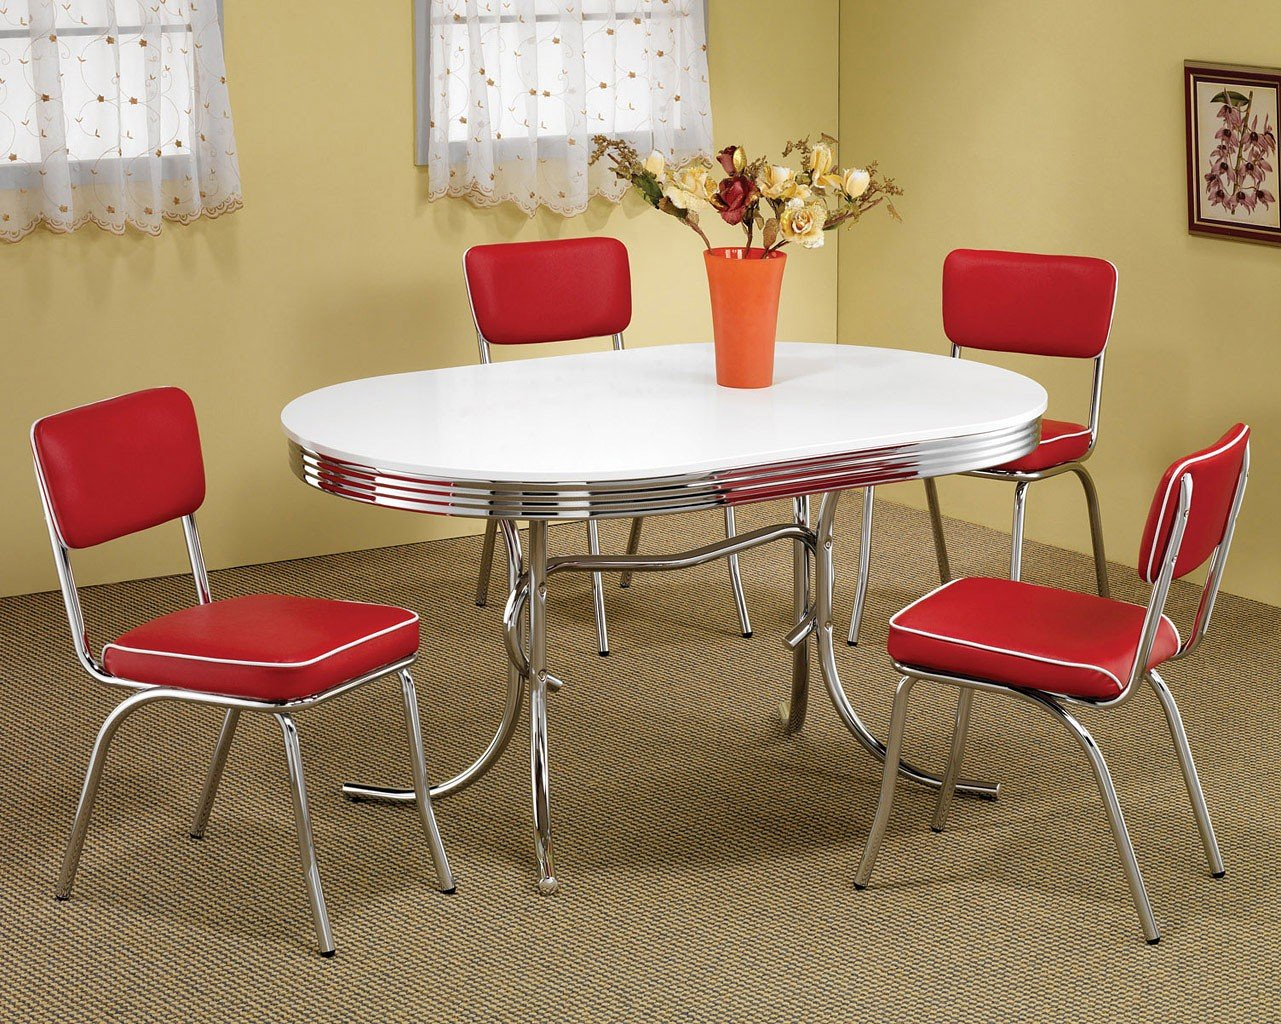 Retro Dining Room Set W Red Chairs Coaster Furniture Furniture Cart